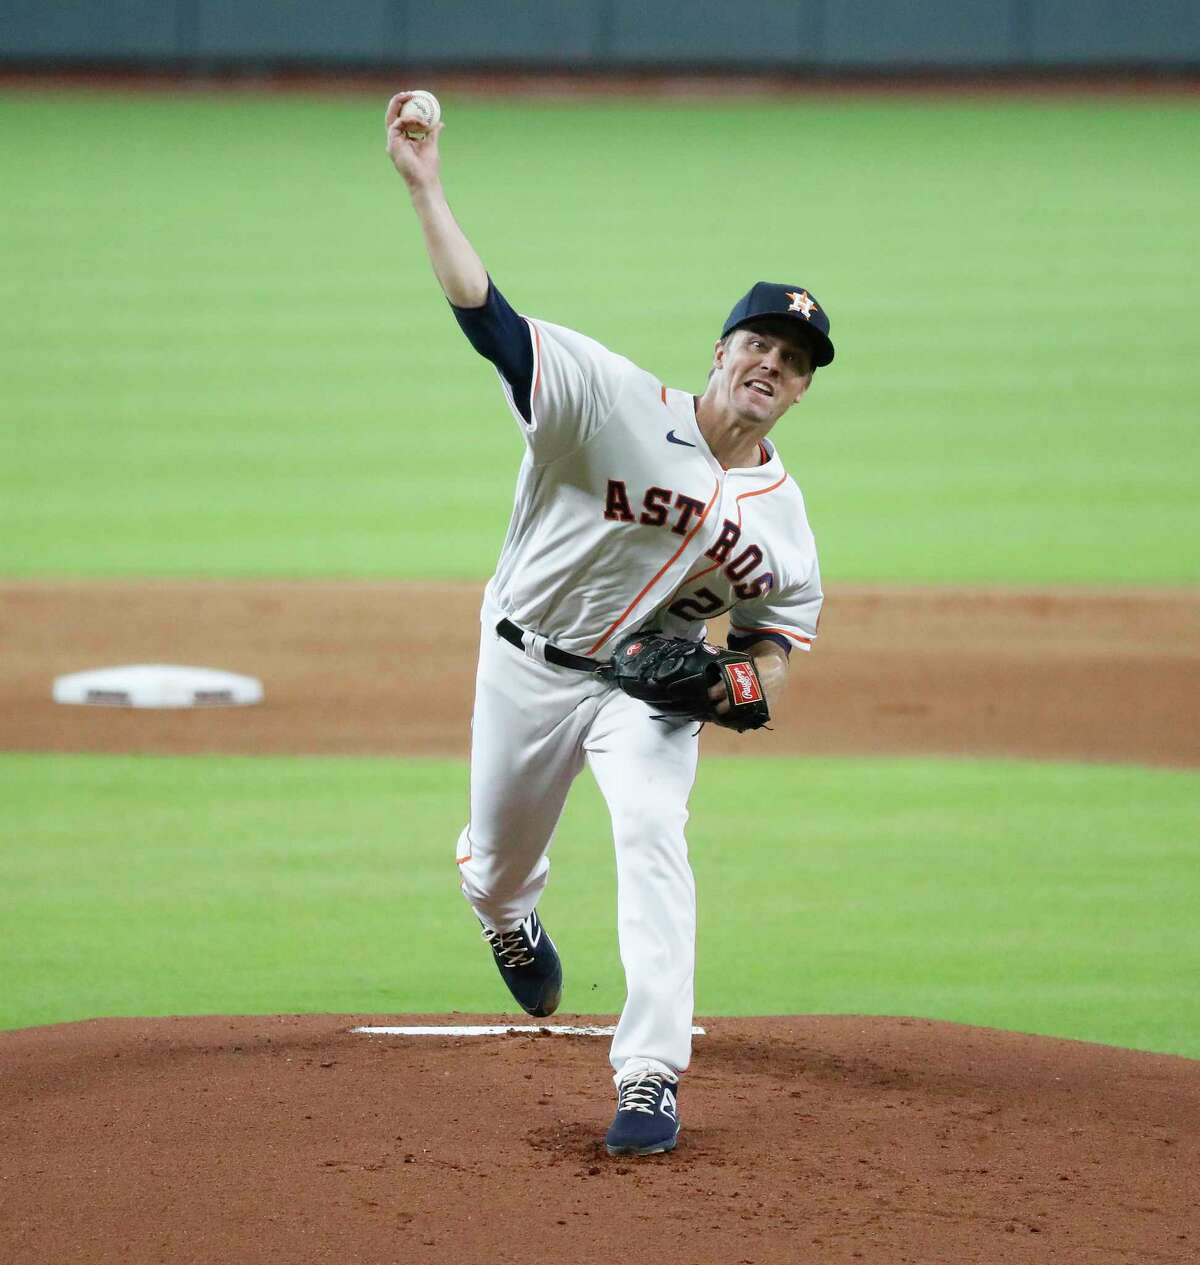 Houston Astros pitcher Zack Greinke pitches during the first inning of an MLB baseball game at Minute Maid Park, Wednesday, August 12, 2020, in Houston.